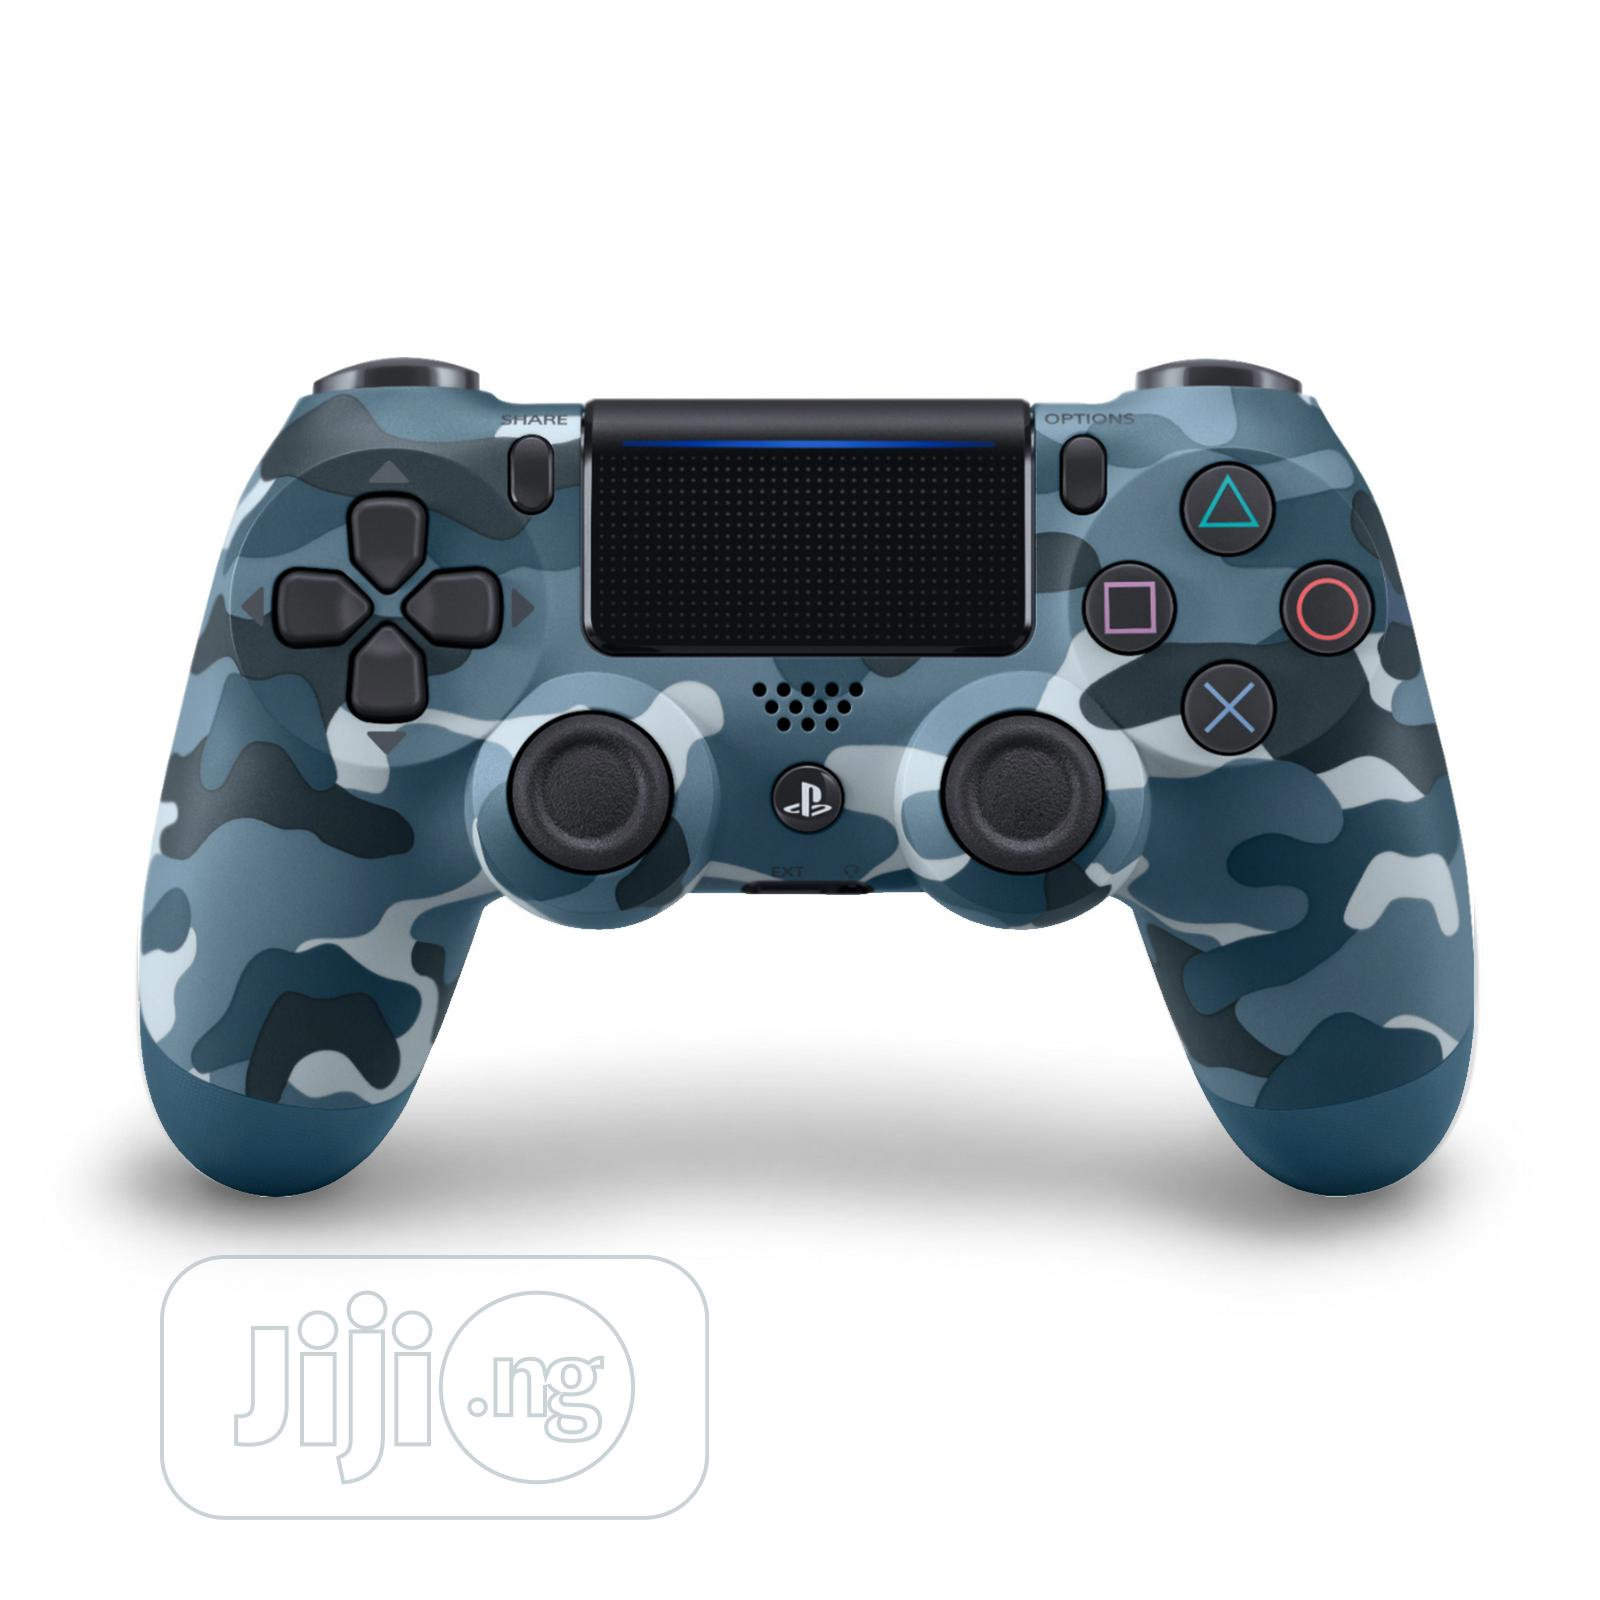 Sony Ps4 Game Pad Dual Shock 4 Wireless Controller-Blue Carm | Accessories & Supplies for Electronics for sale in Ikeja, Lagos State, Nigeria